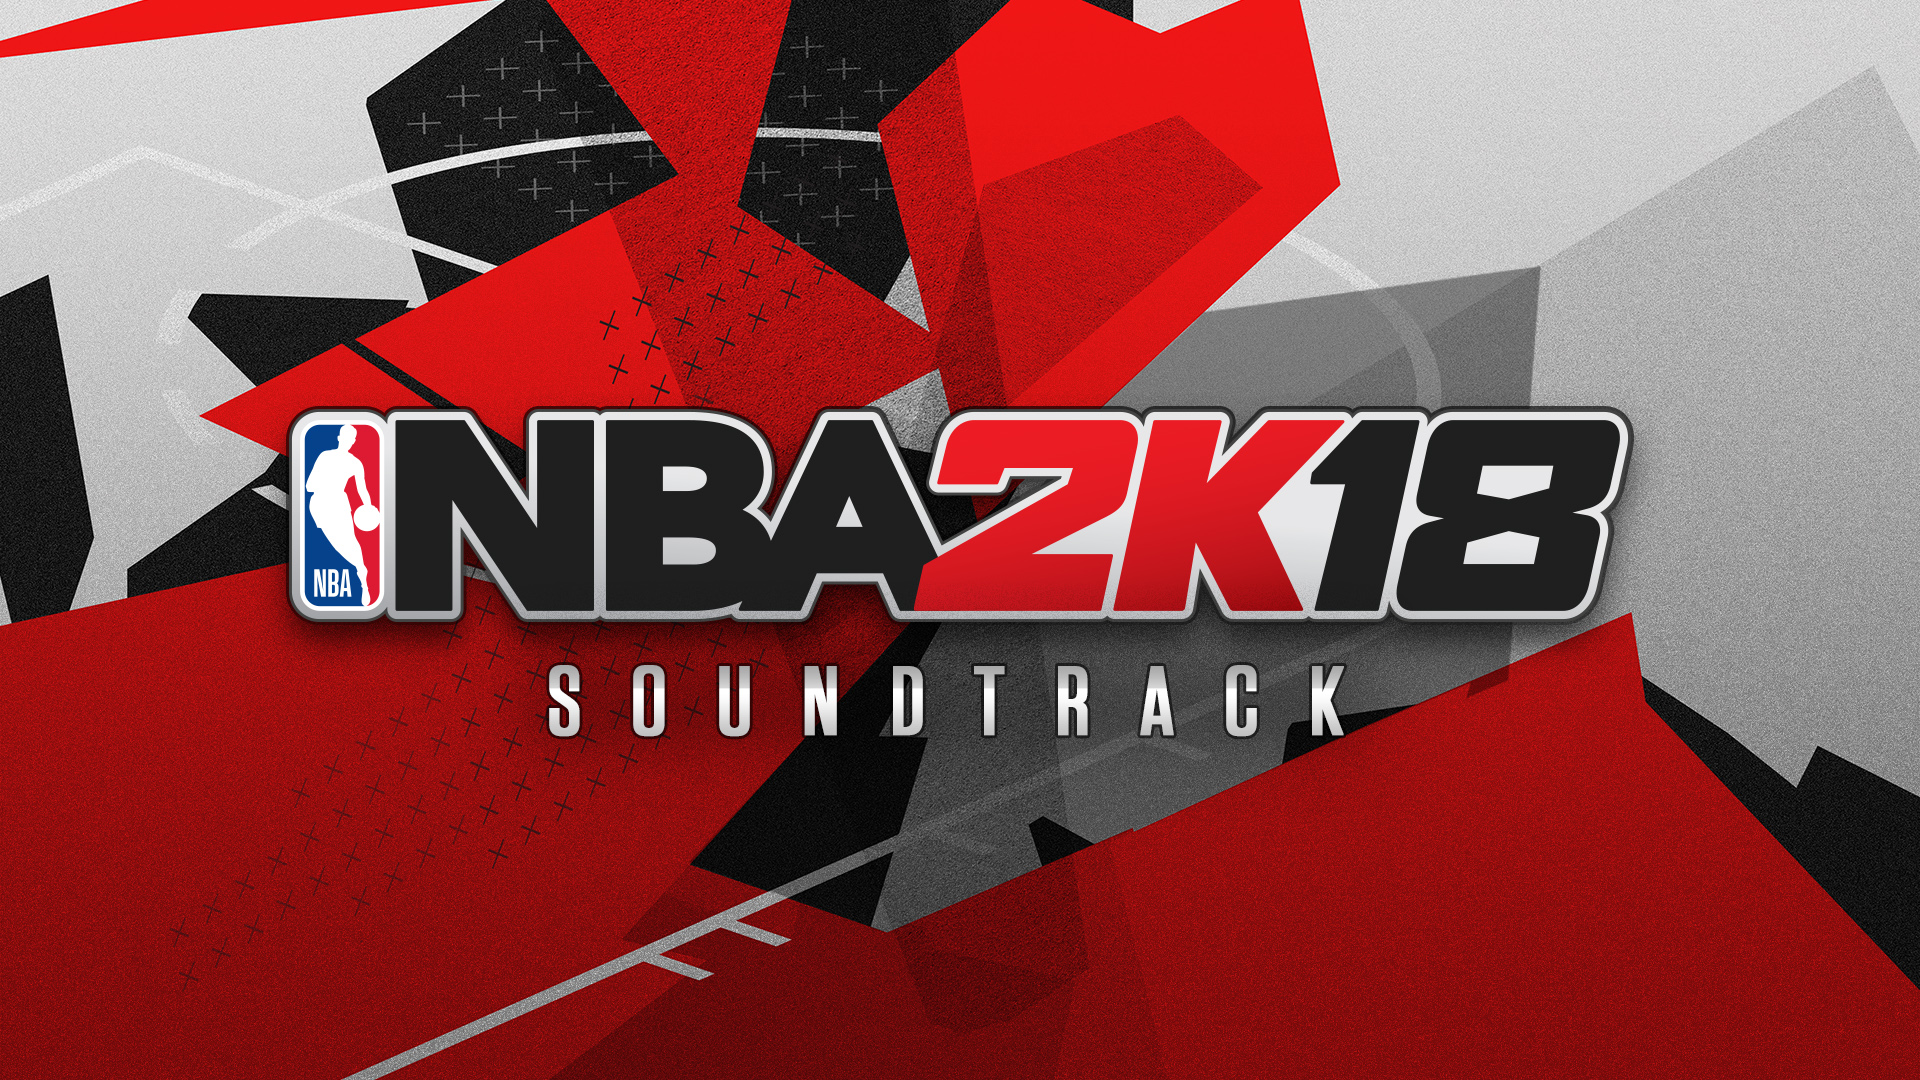 2ksmkt_nba2k18_soundtrack_1920x1080